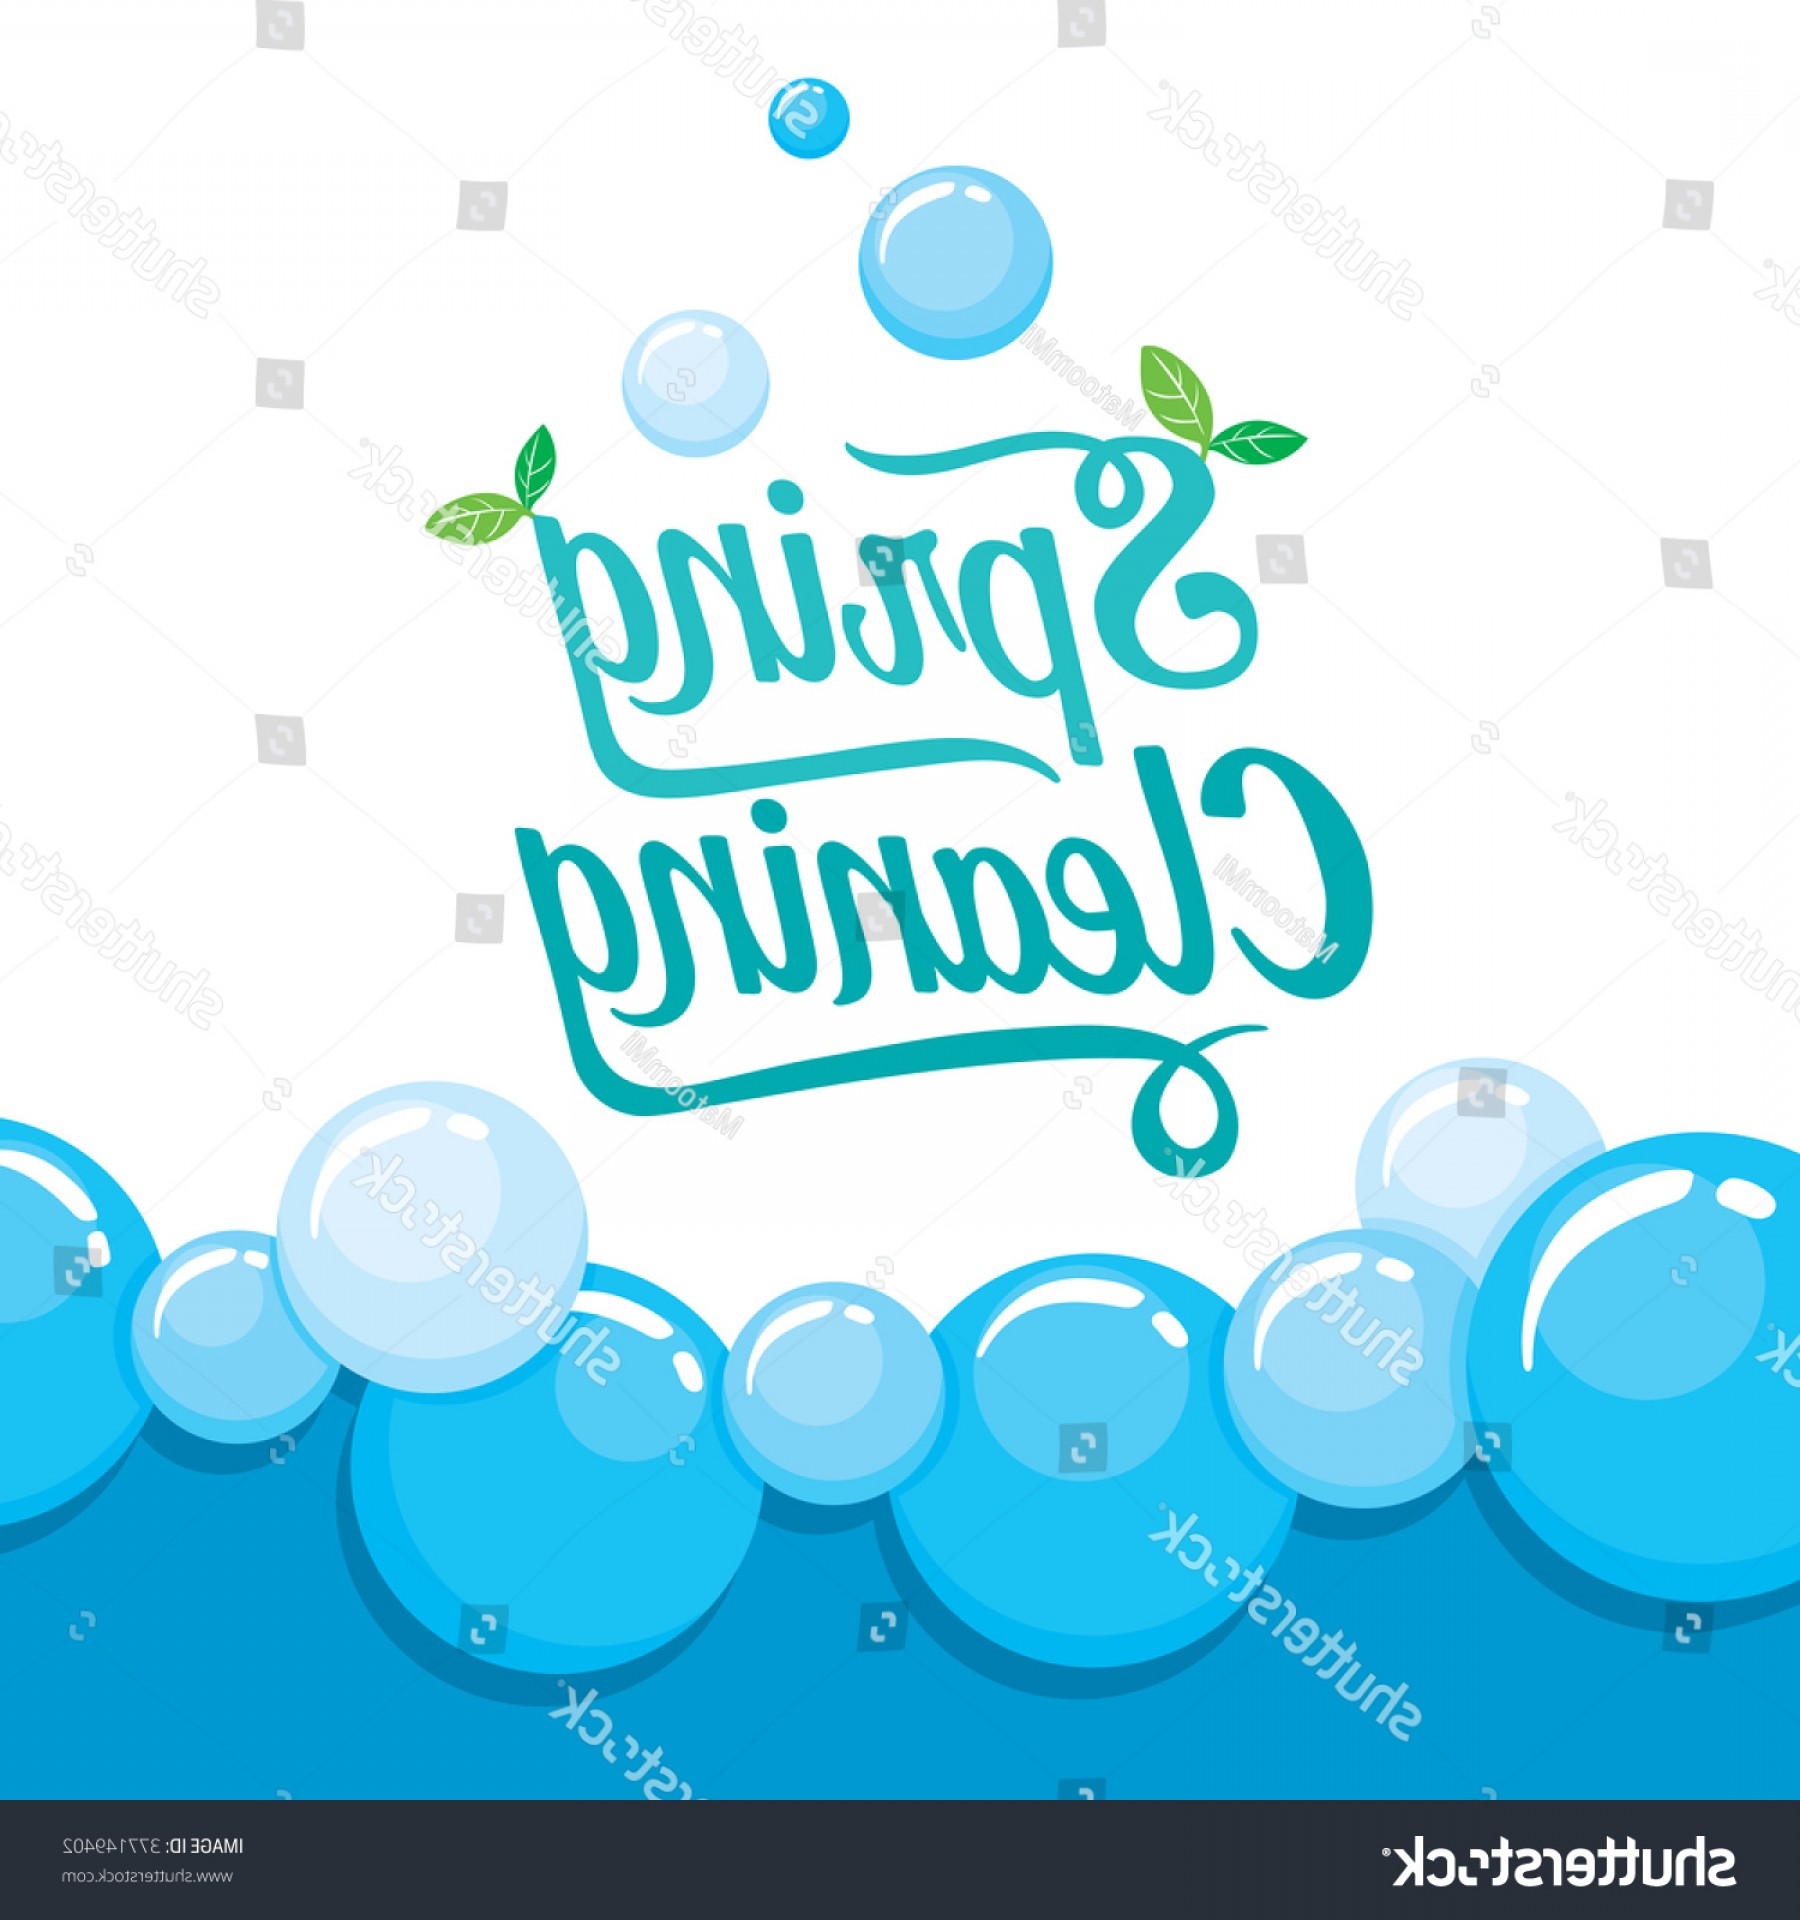 Cleaning Vector Background: Spring Cleaning Letter Decorating Foam Background